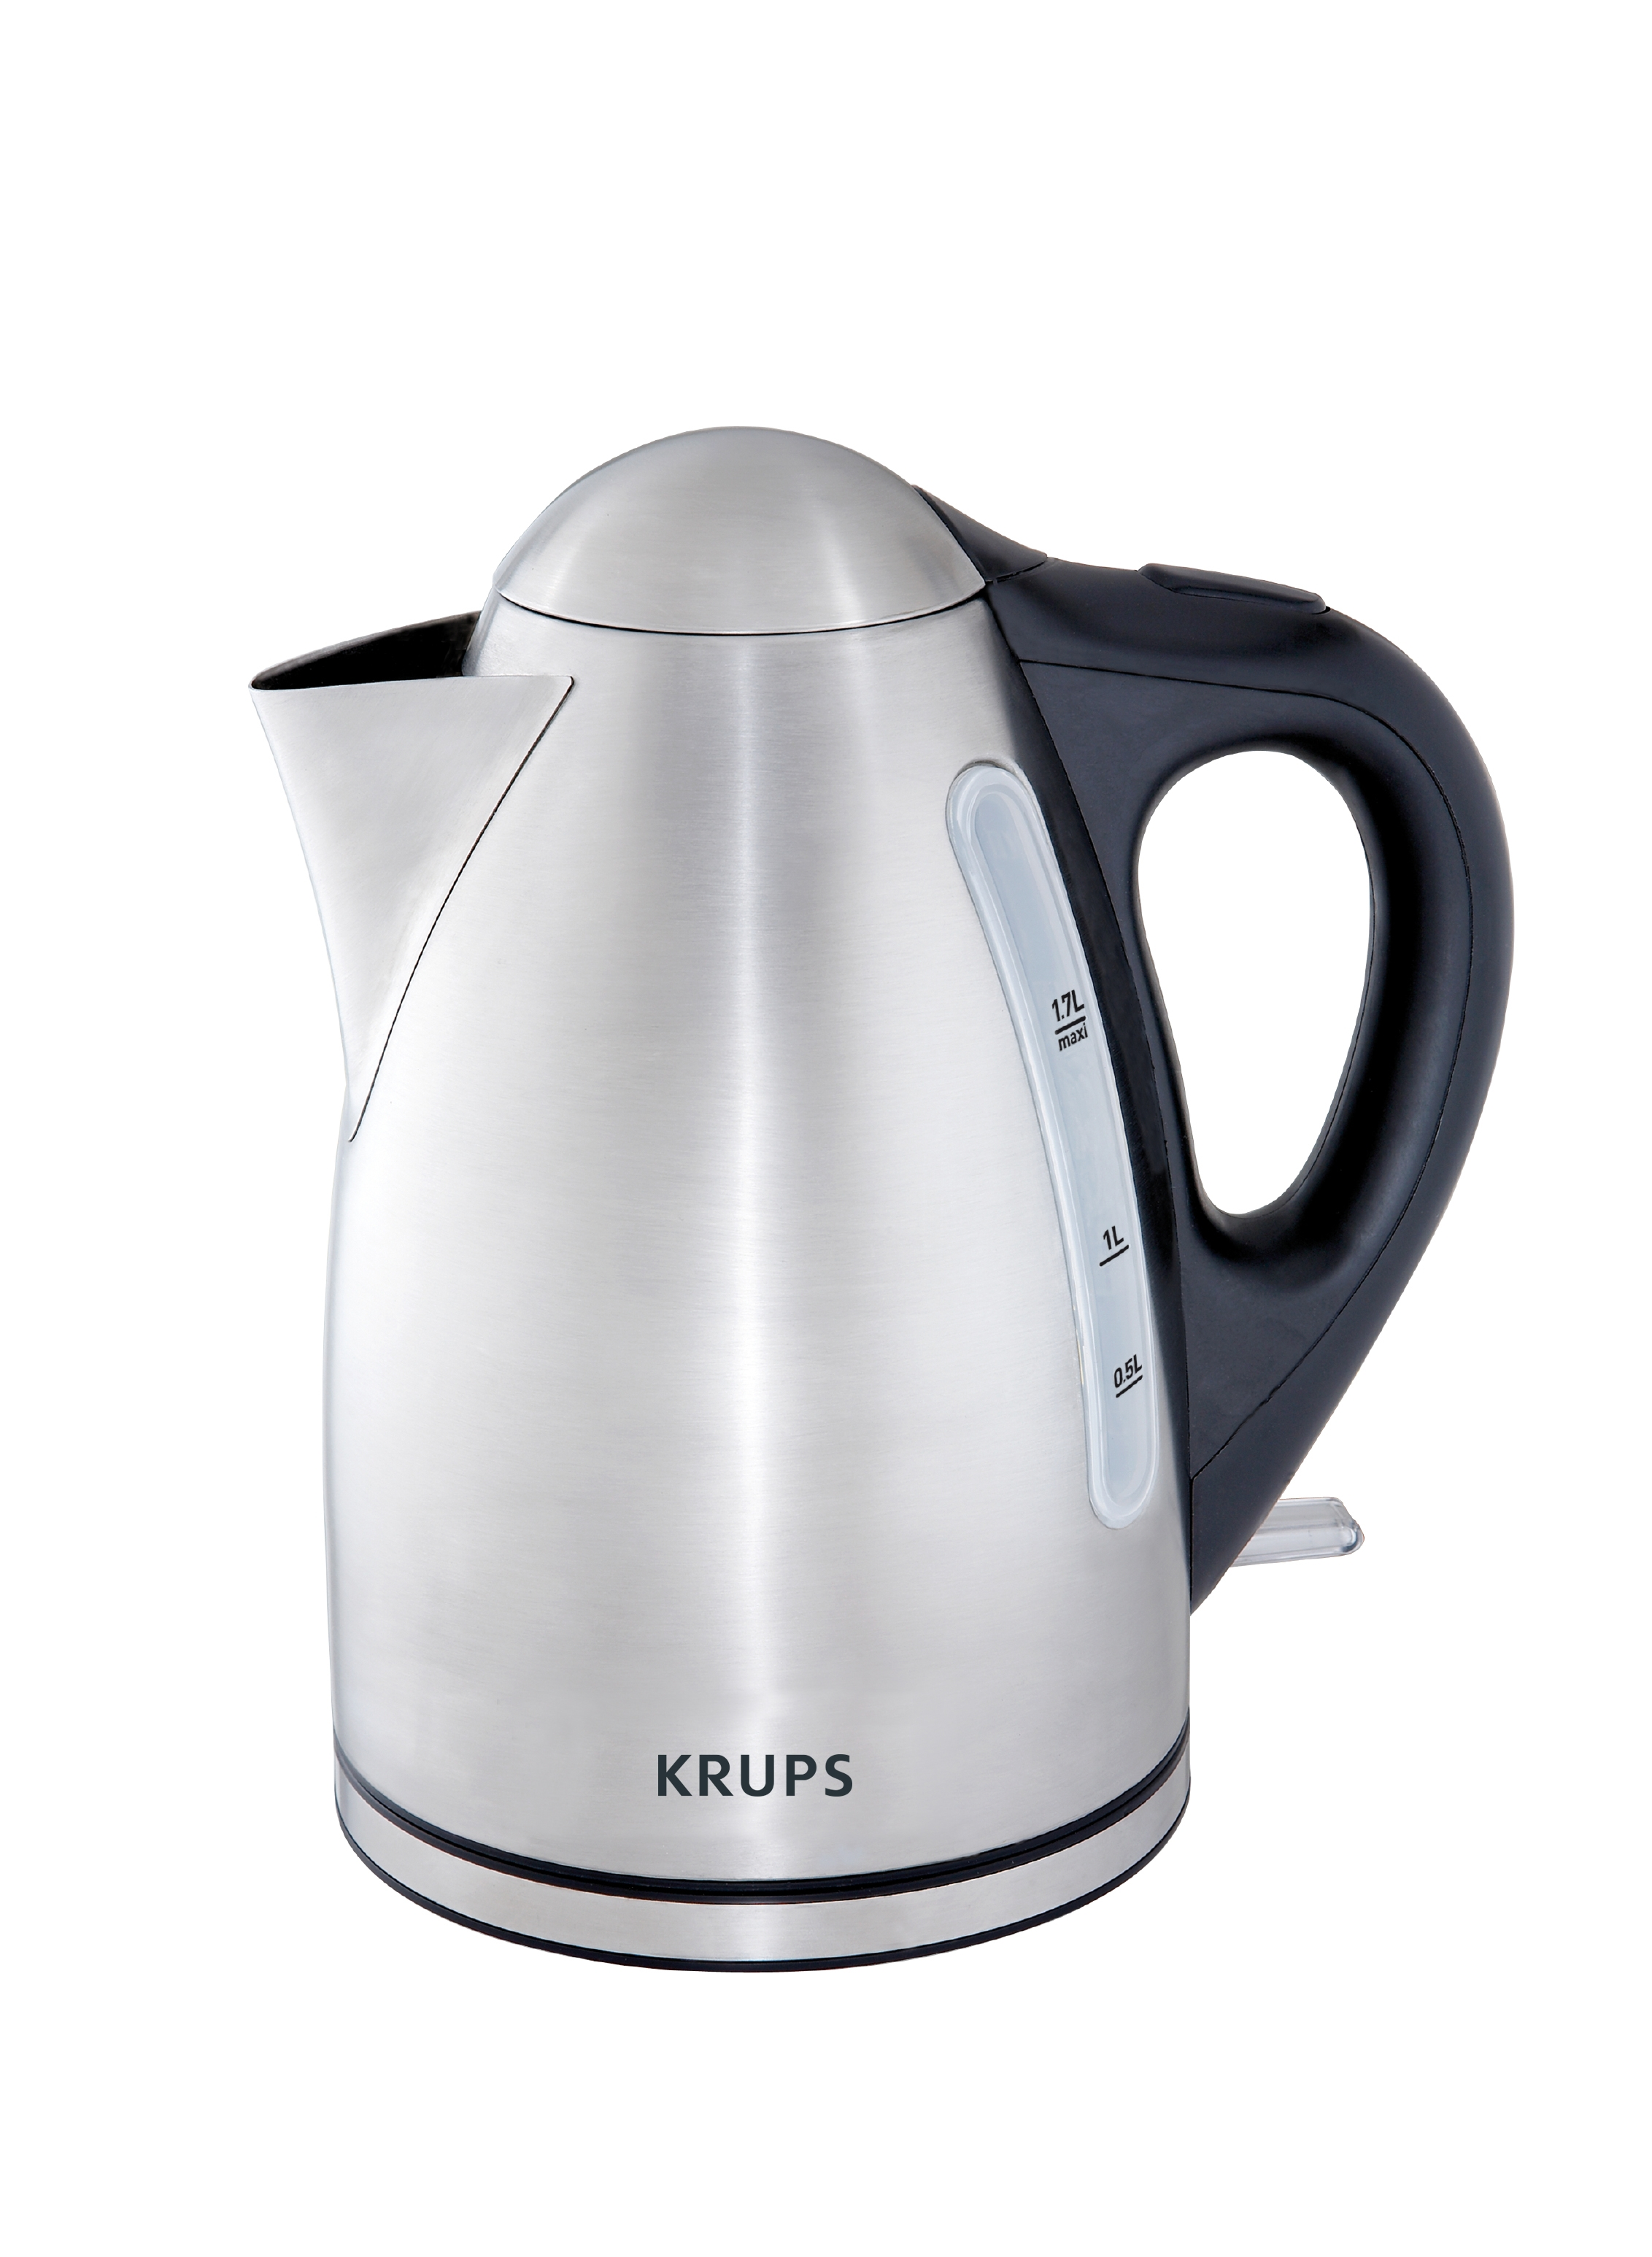 Food Electric Kettles ~ Bww reviews krups electric tea kettle to relax and refresh